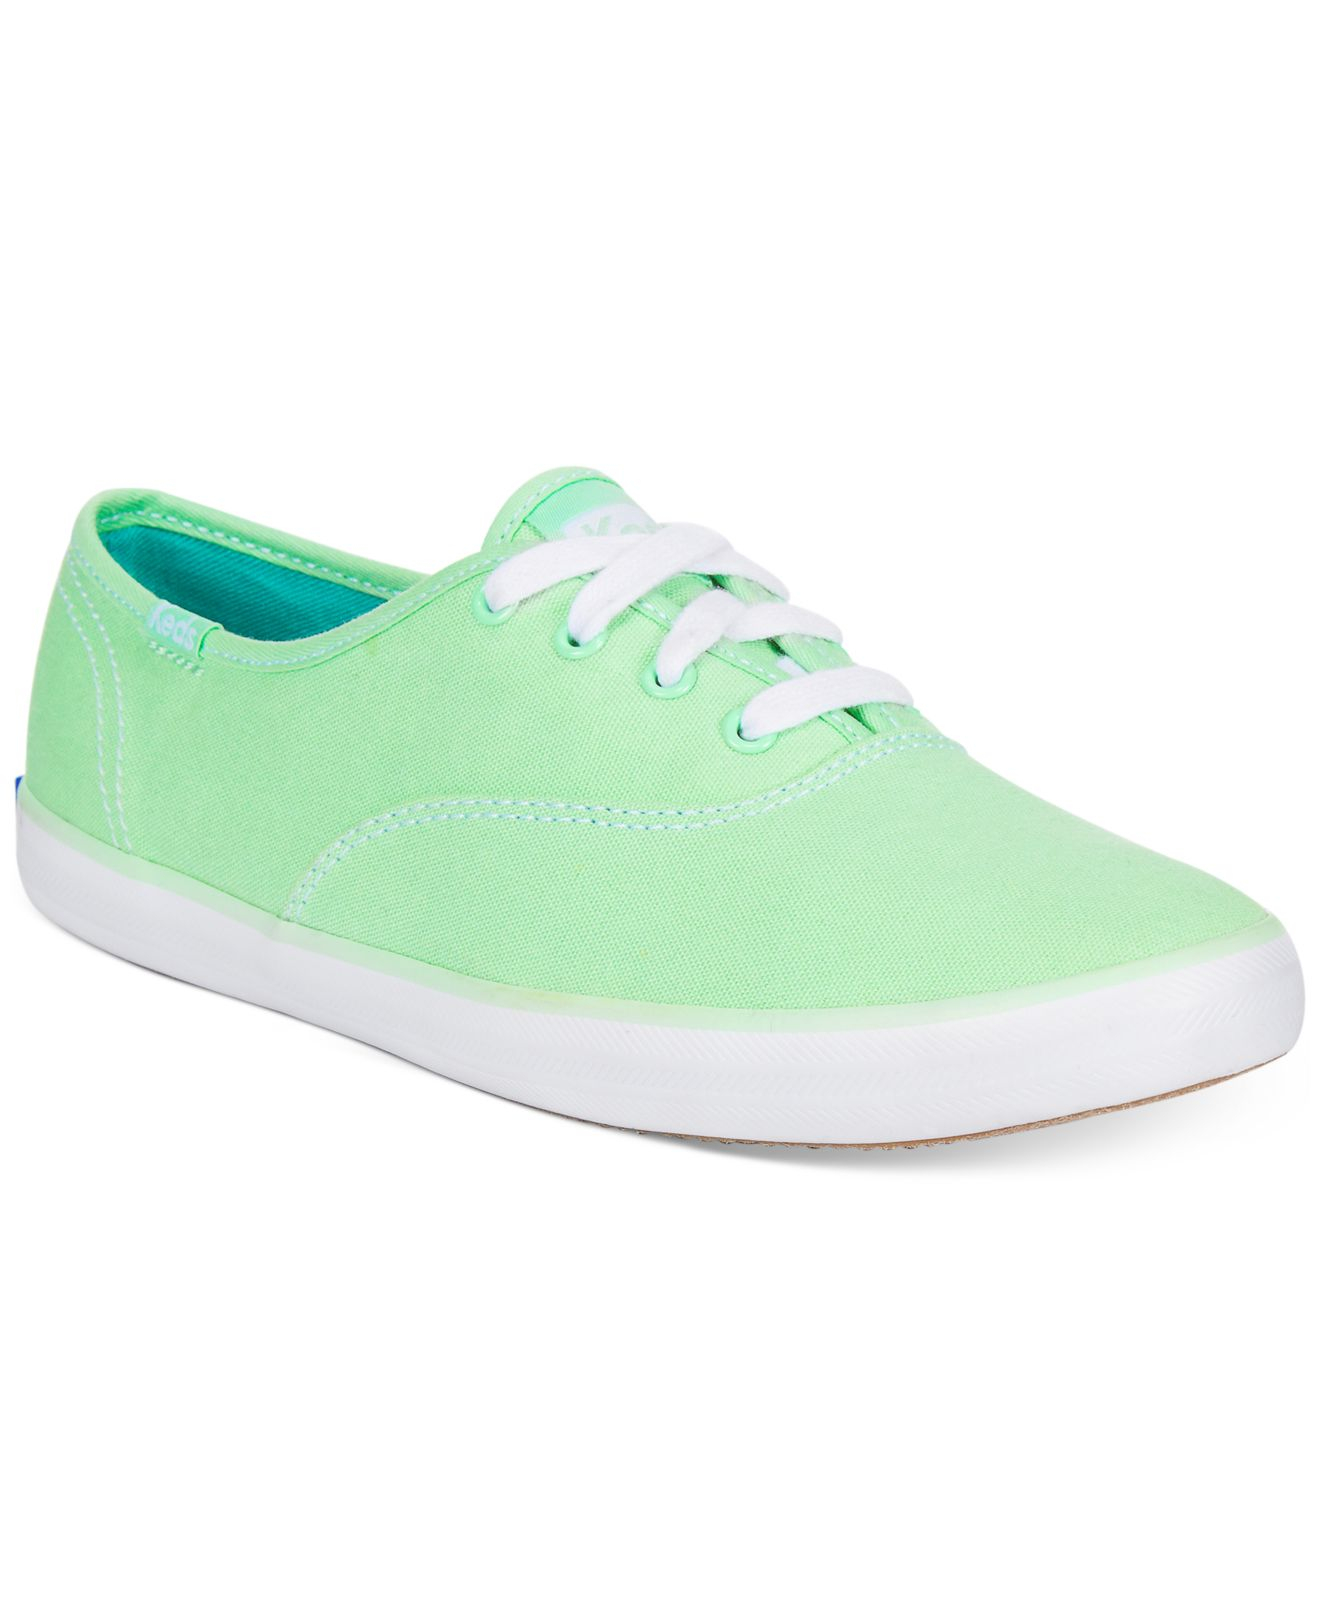 62b9d5165ca5 Lyst - Keds Women S Champion Oxford Sneakers in Green